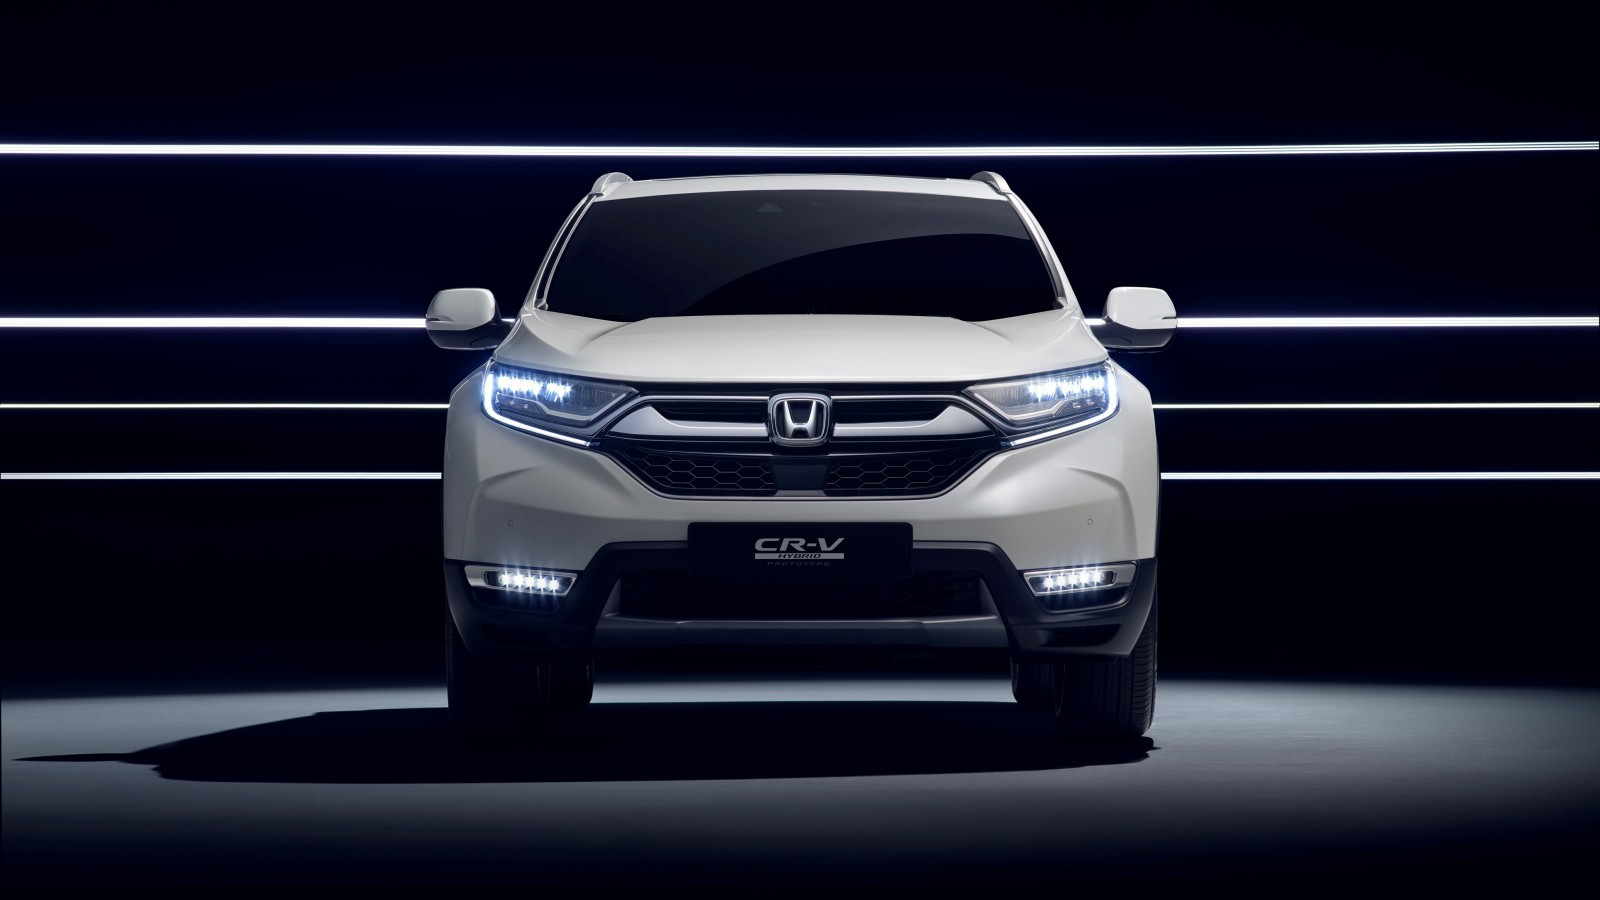 2018 Honda CR V Hybrid Prototype 4K Wallpaper | HD Car Wallpapers | ID #8453